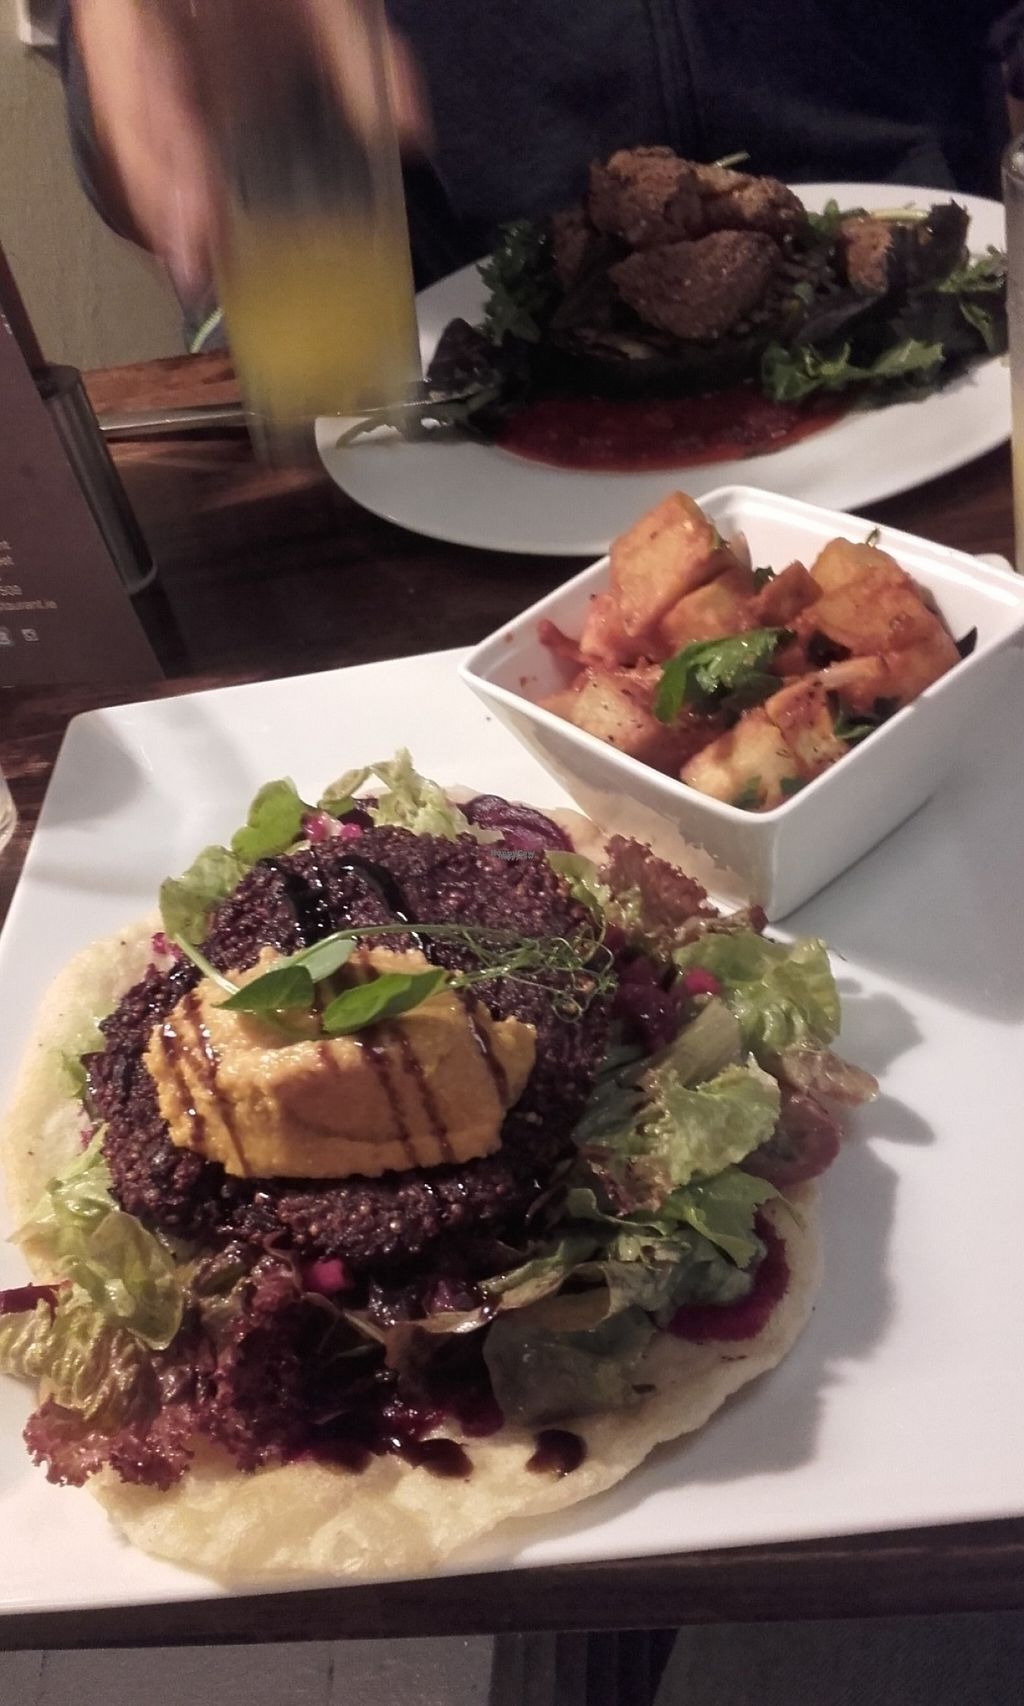 "Photo of Momo Restaurant  by <a href=""/members/profile/trollcat45"">trollcat45</a> <br/>quinoa/beetroot Patty with Indian-spiced Potatoes, green salad and flatbread with carrot-Hummus, Delicious! <br/> August 7, 2016  - <a href='/contact/abuse/image/60374/166671'>Report</a>"